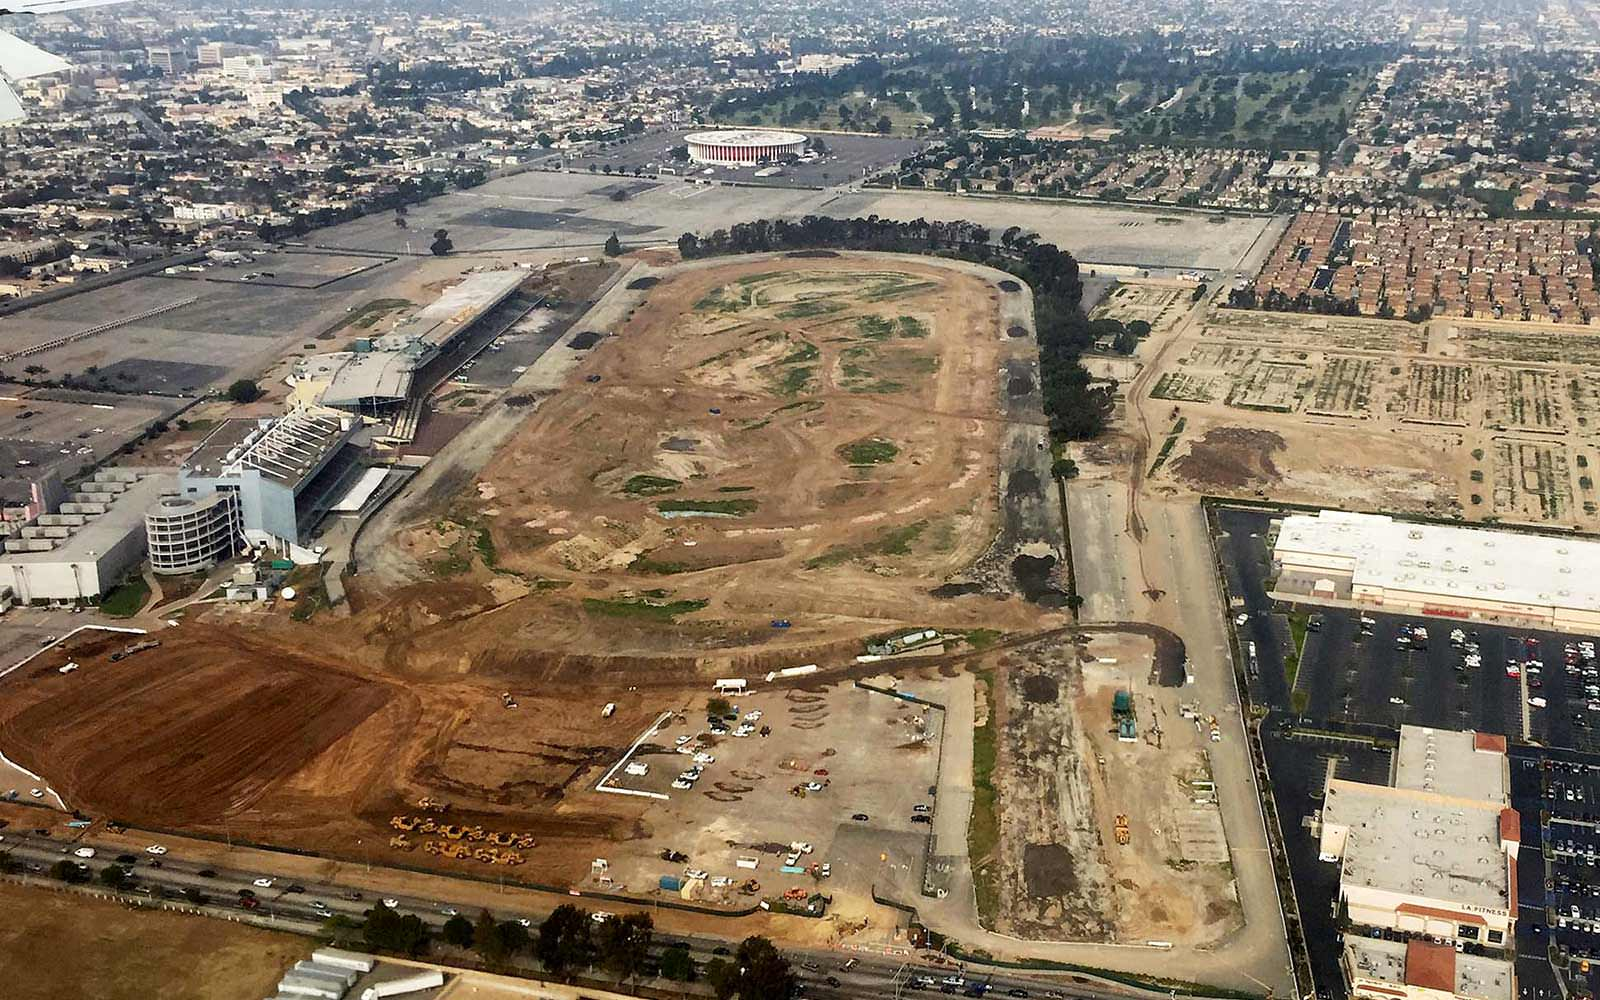 Hollywood Park Demolition